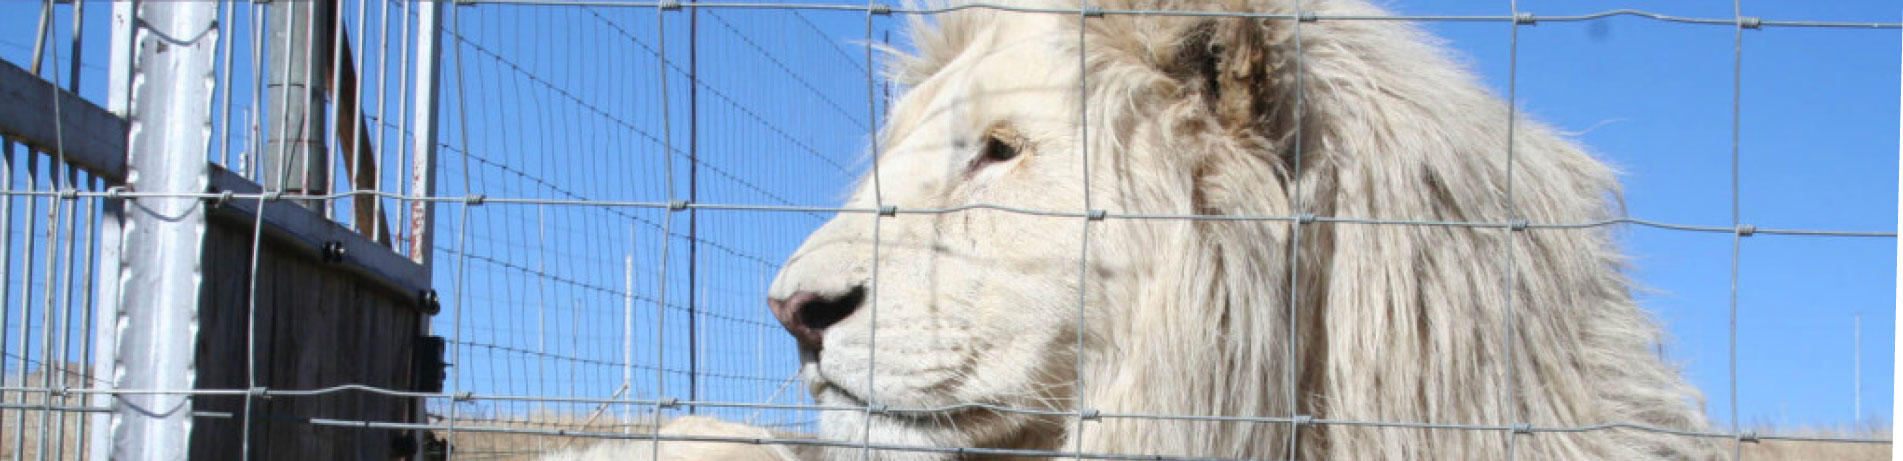 Captive bred lion